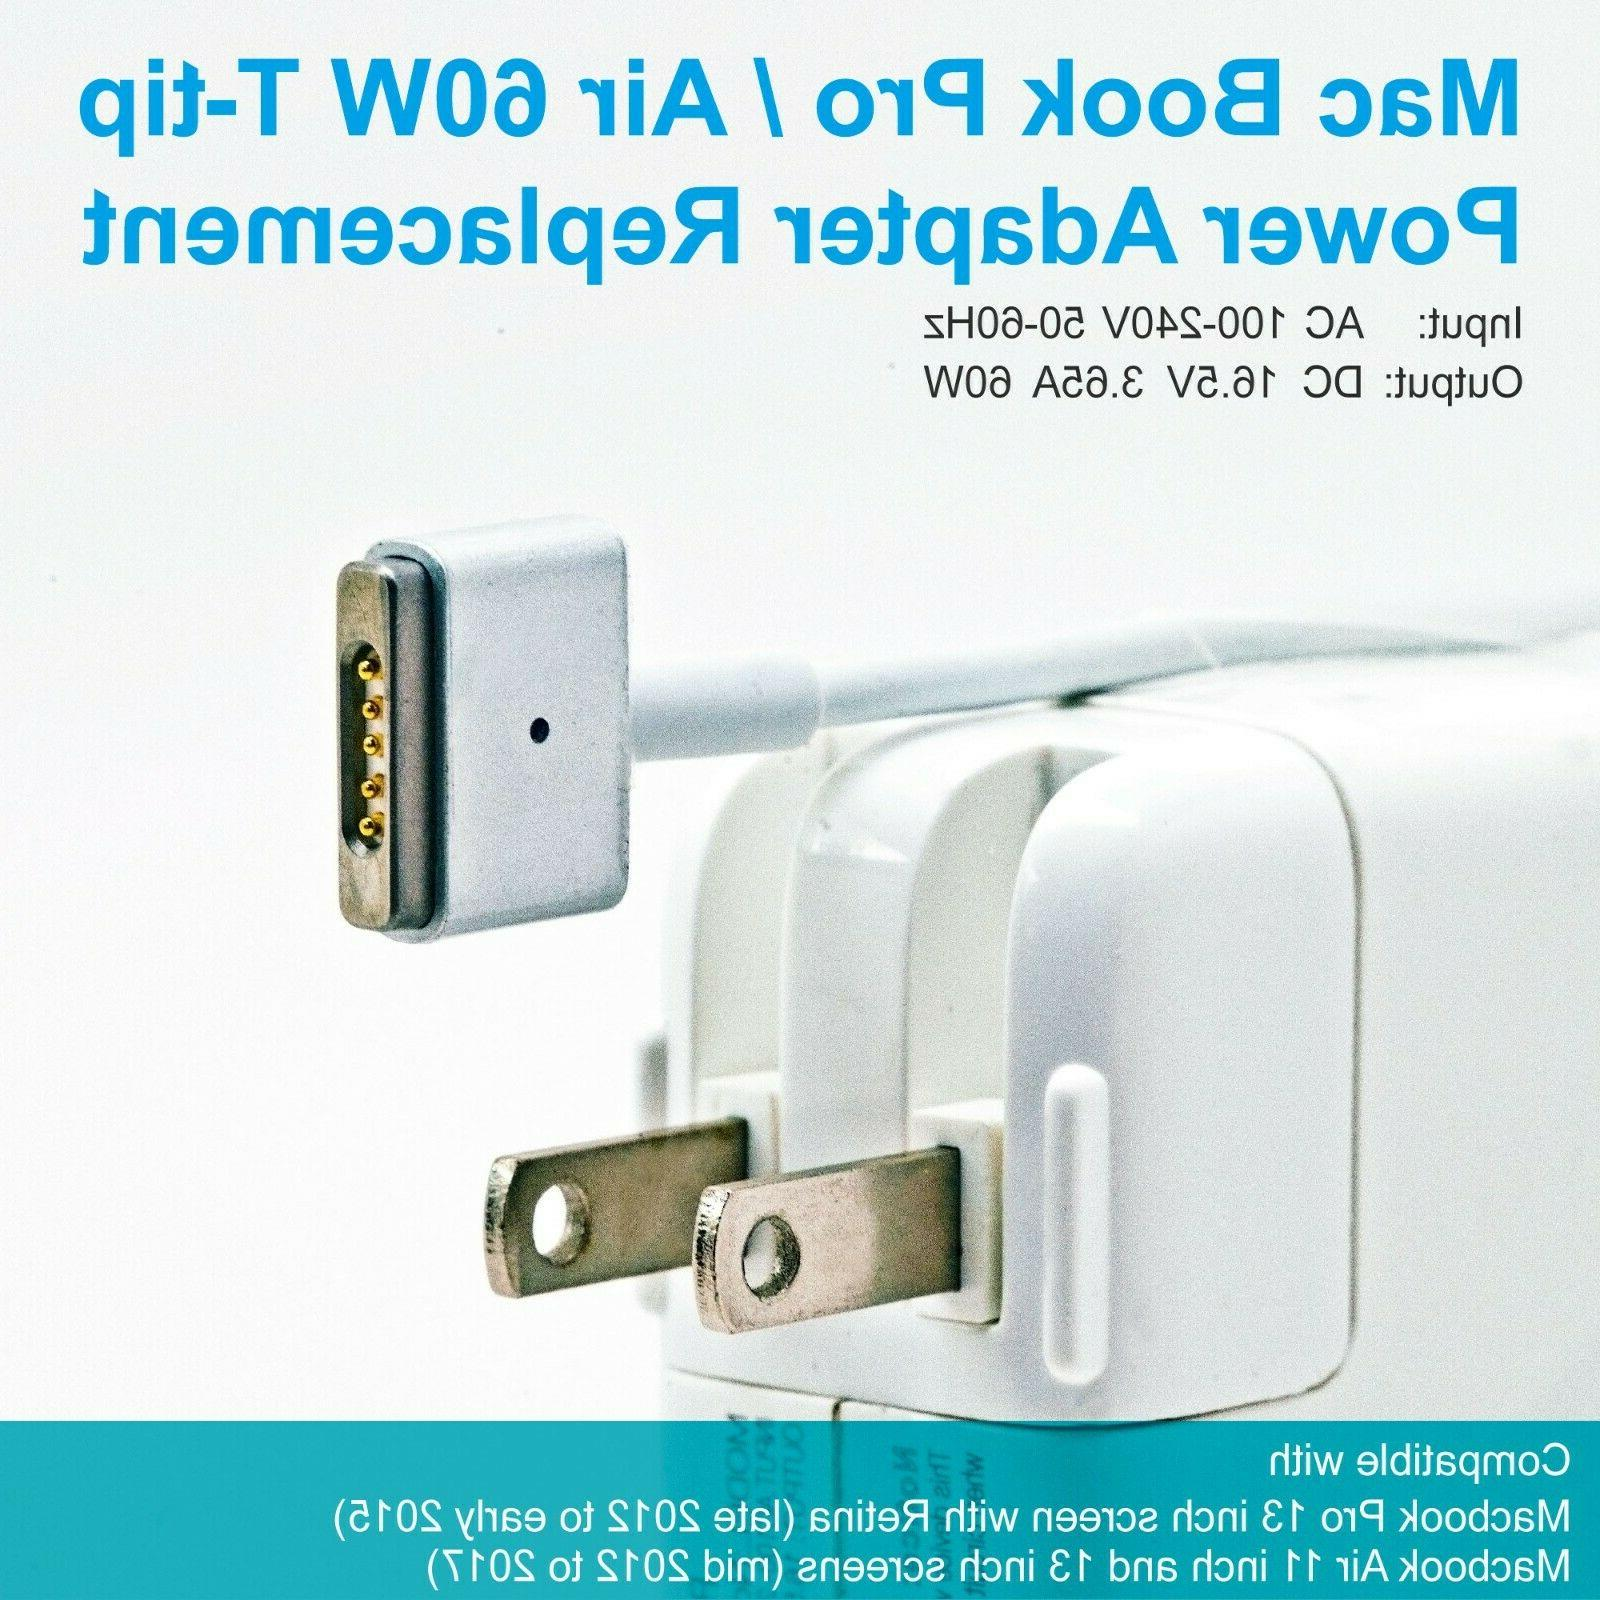 MacBook Charger Replacement for 2012 to early 2015